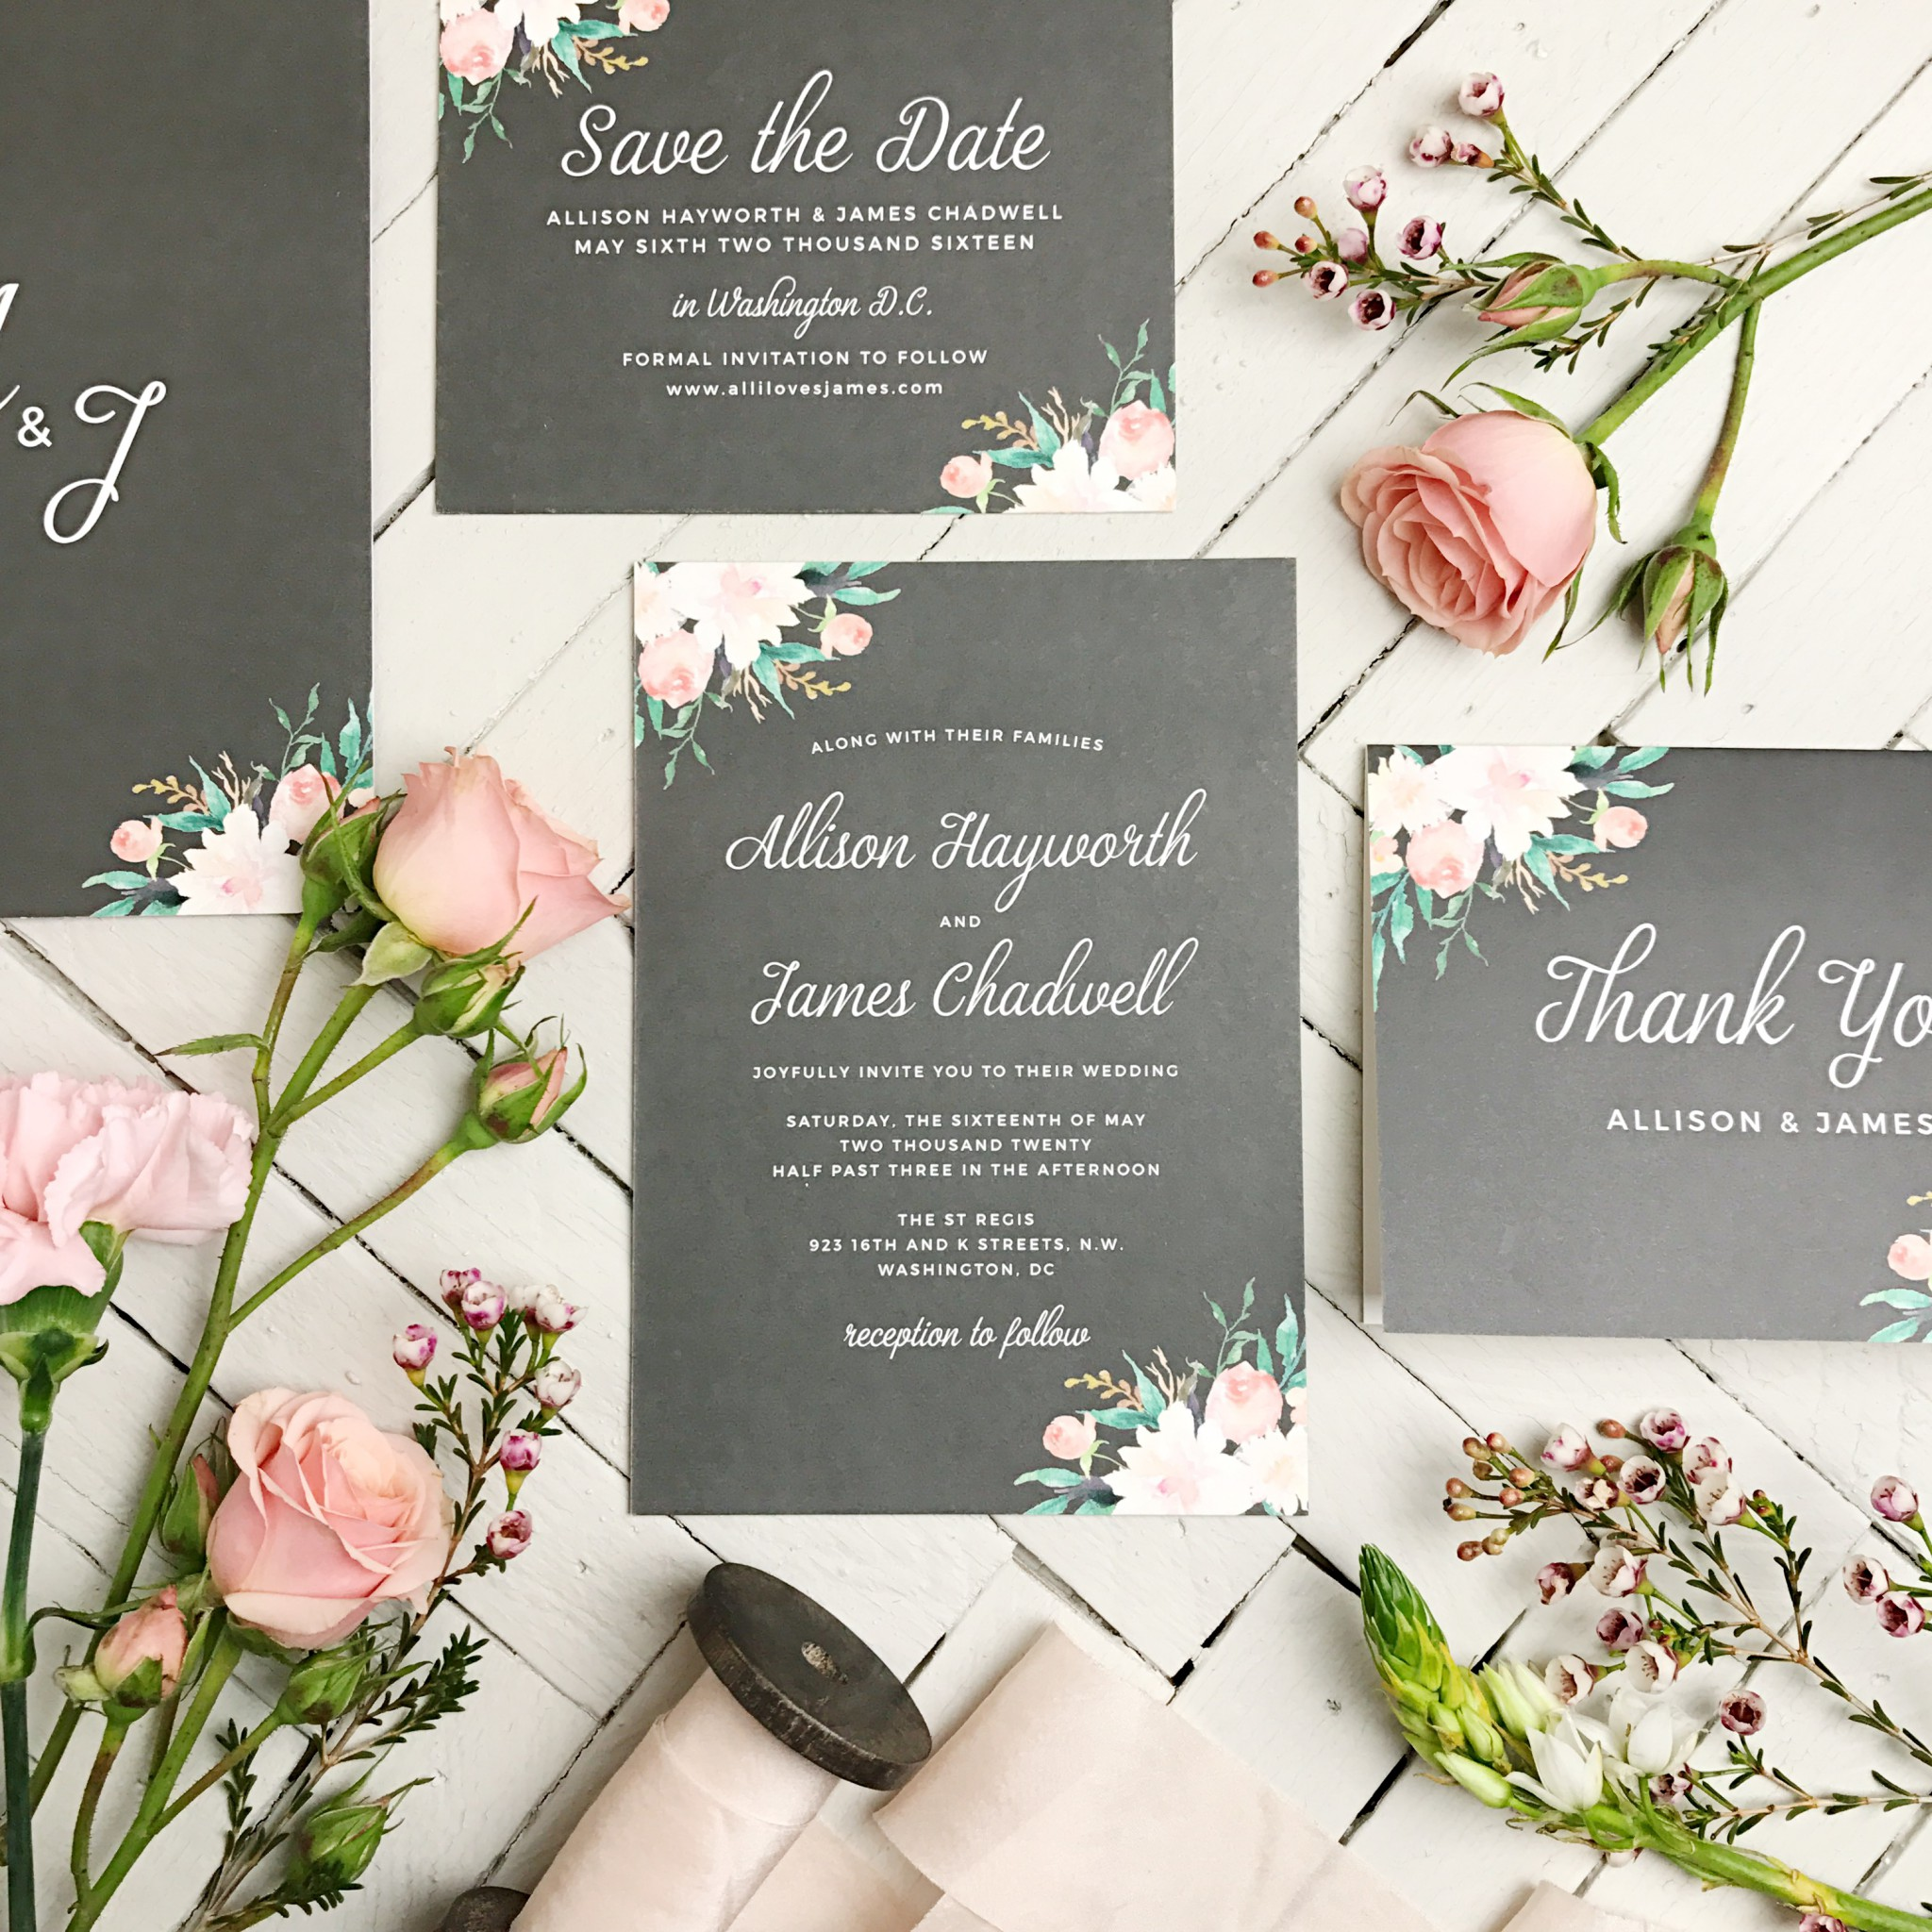 chalk and floral wedding invitations with save the date and thank you cards